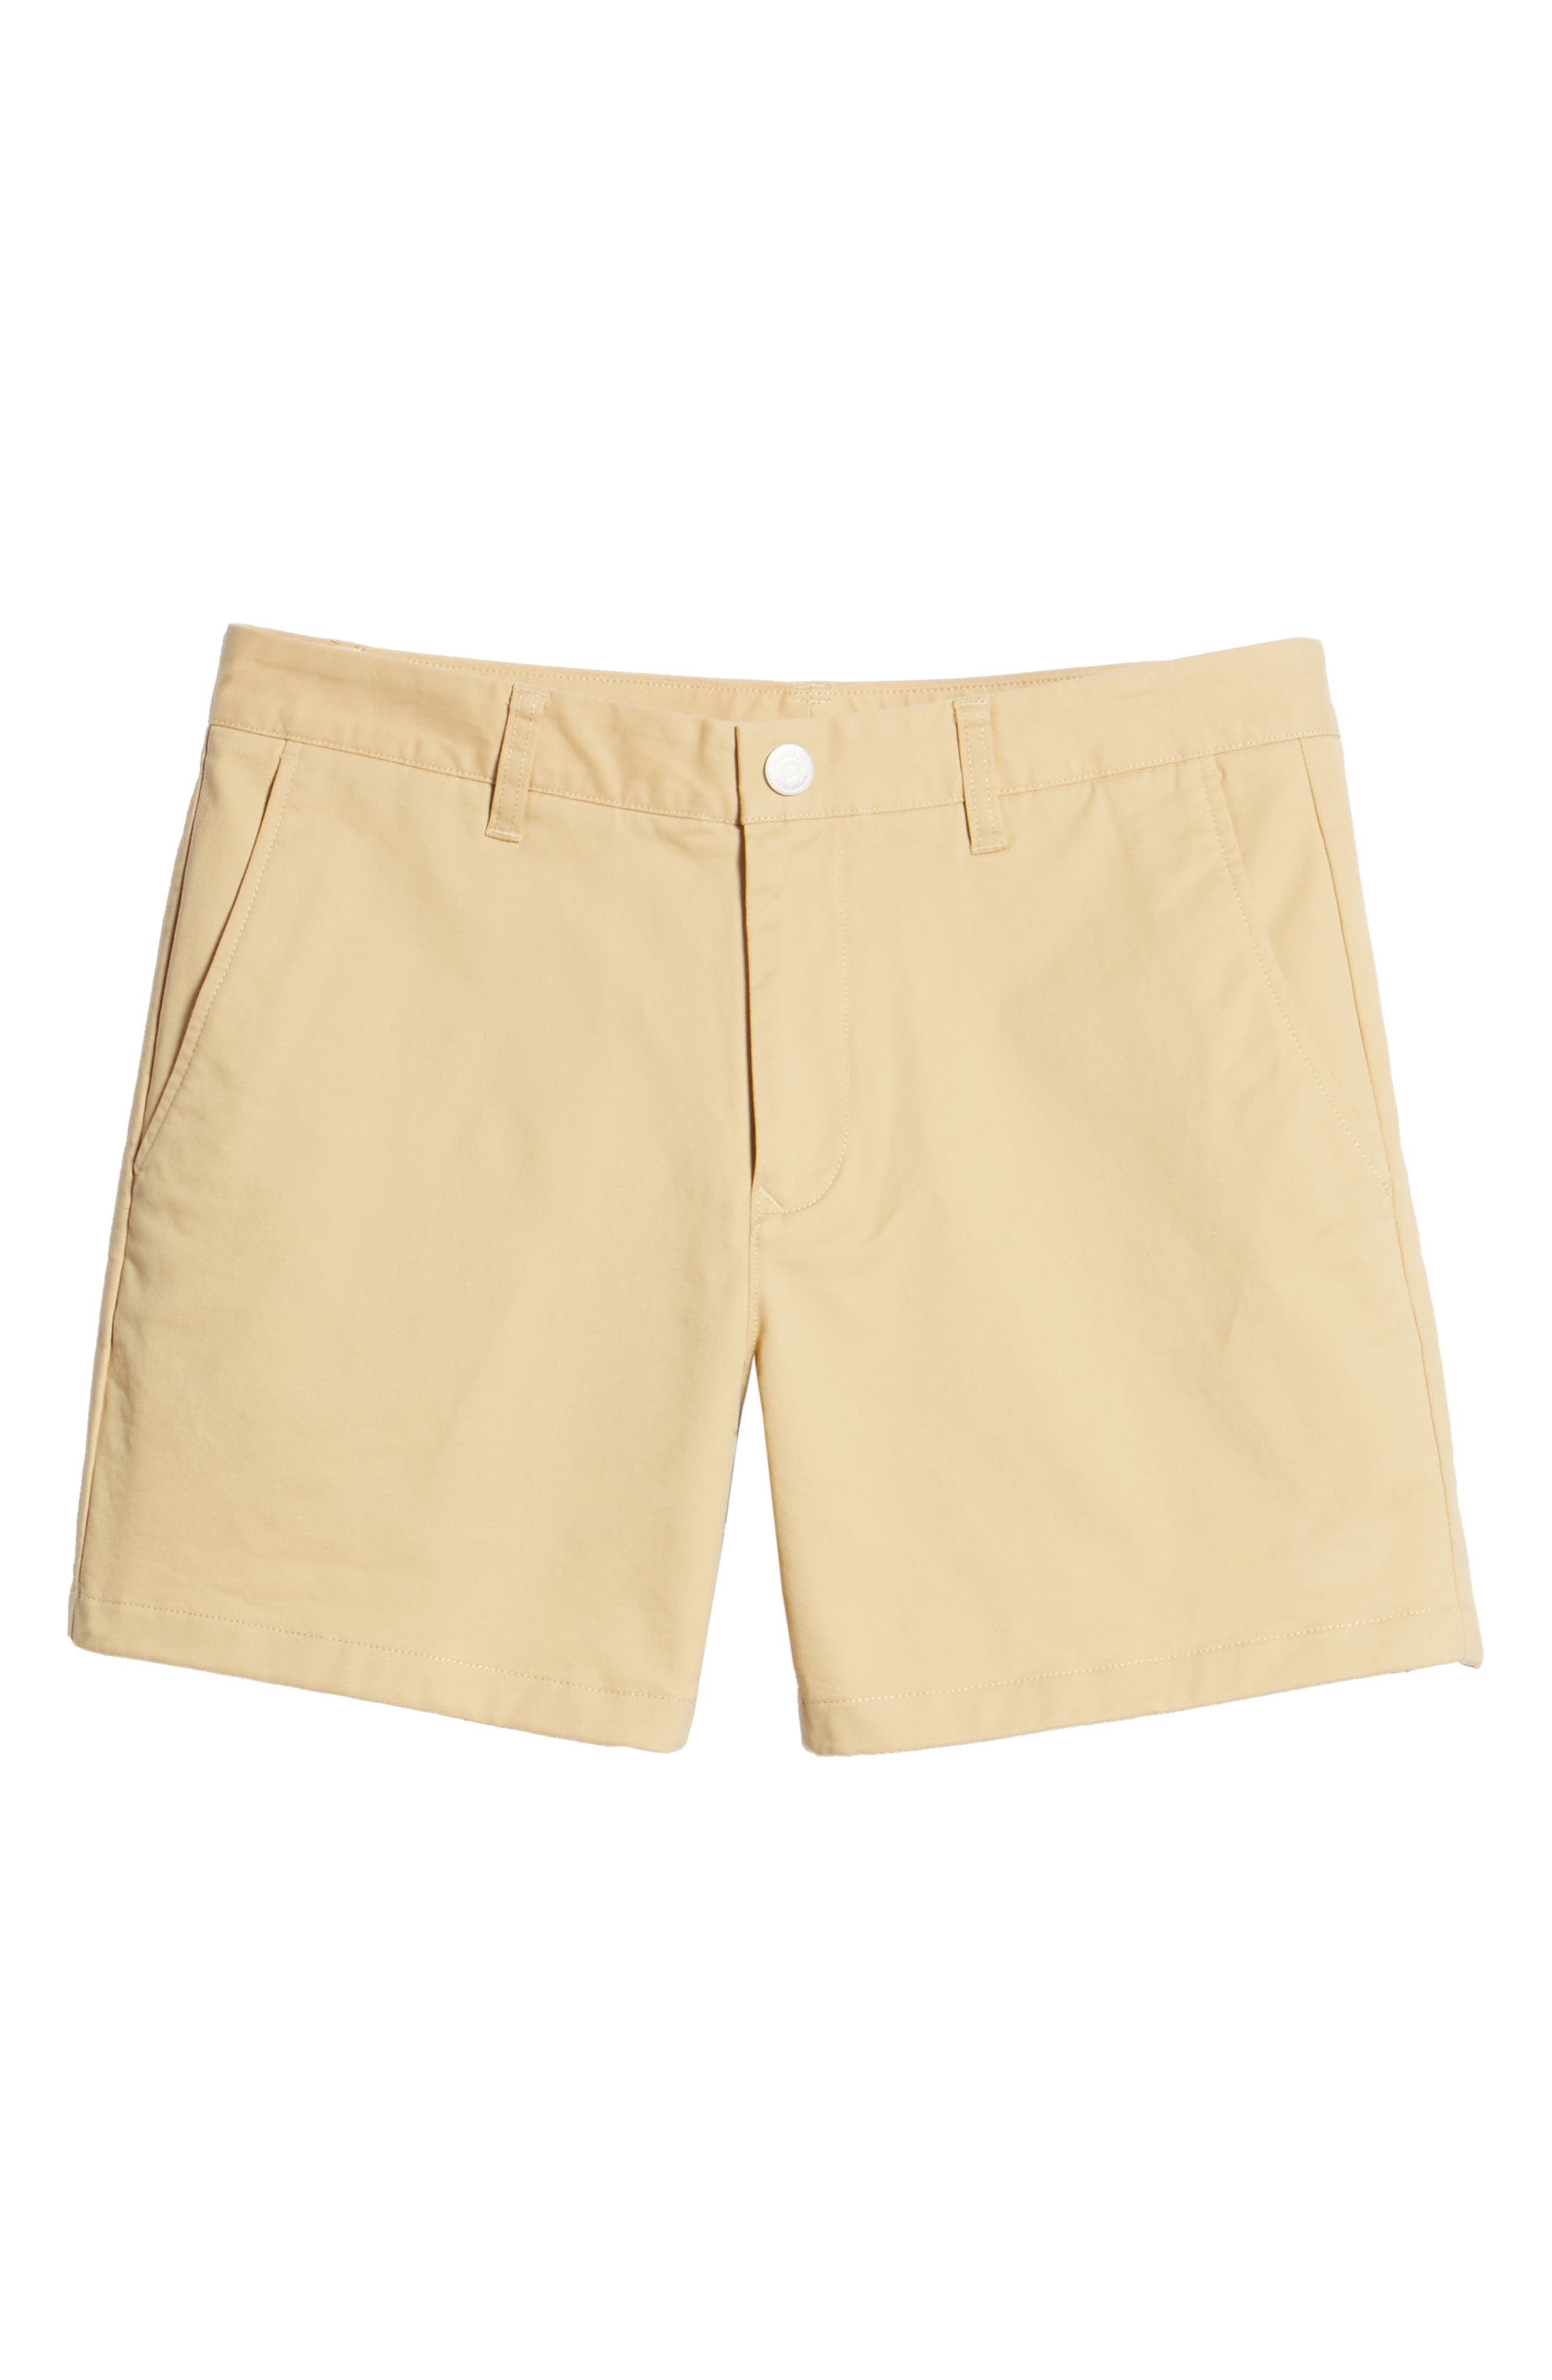 Stretch Washed Chino 5-Inch Shorts,                             Alternate thumbnail 143, color,